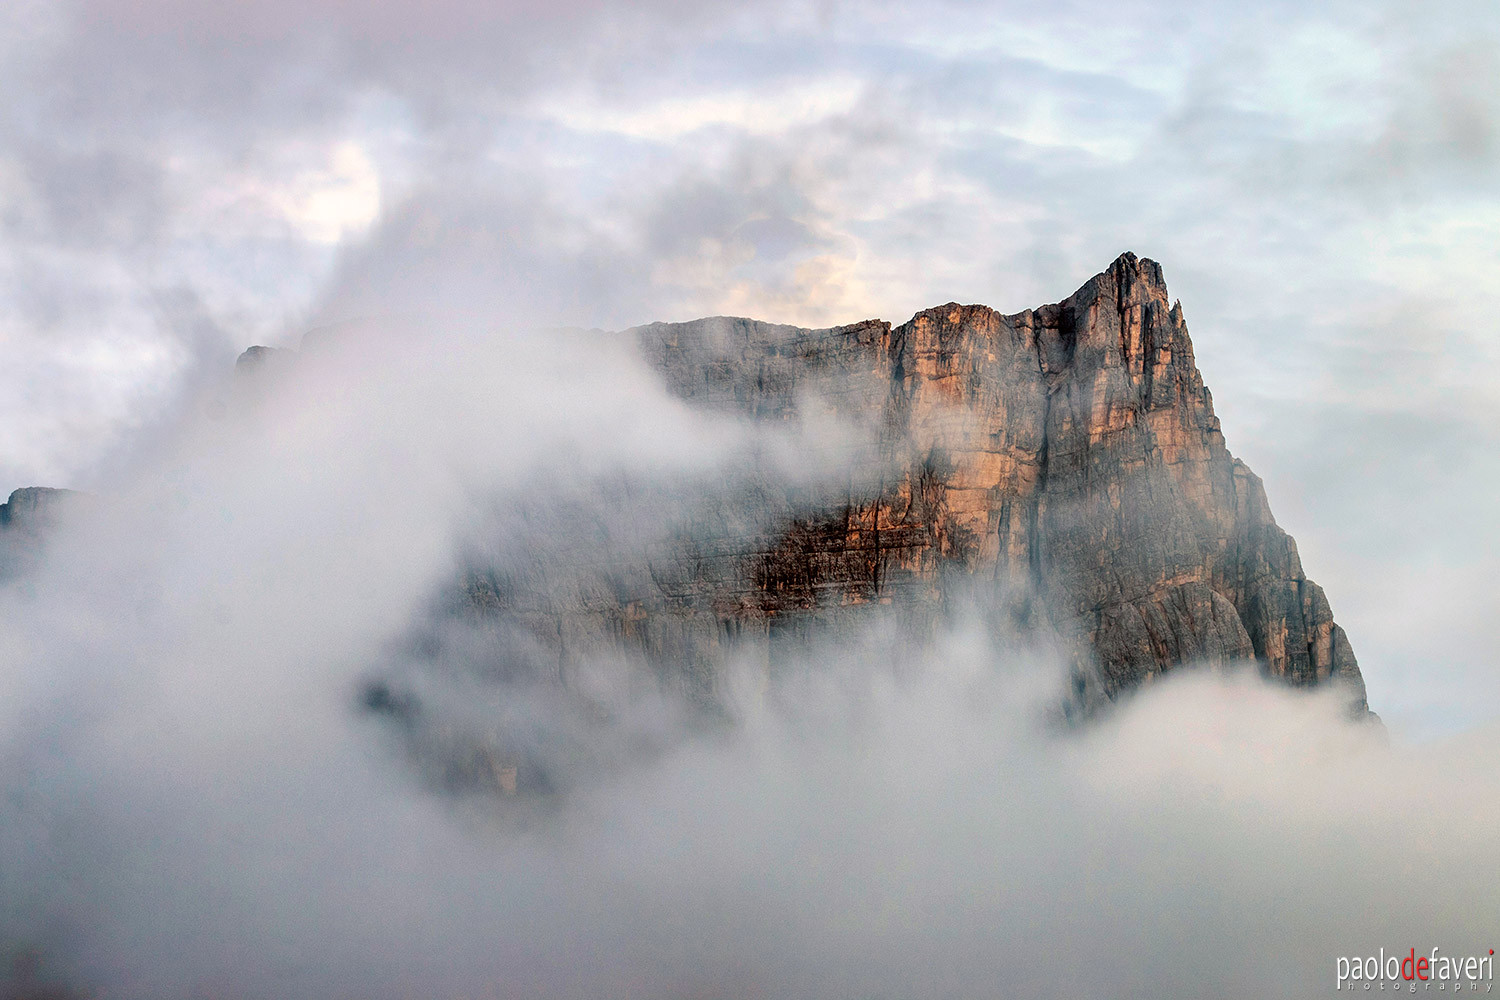 Lastoi_Formin_Passo_Giau_Pass_Fog_Clouds